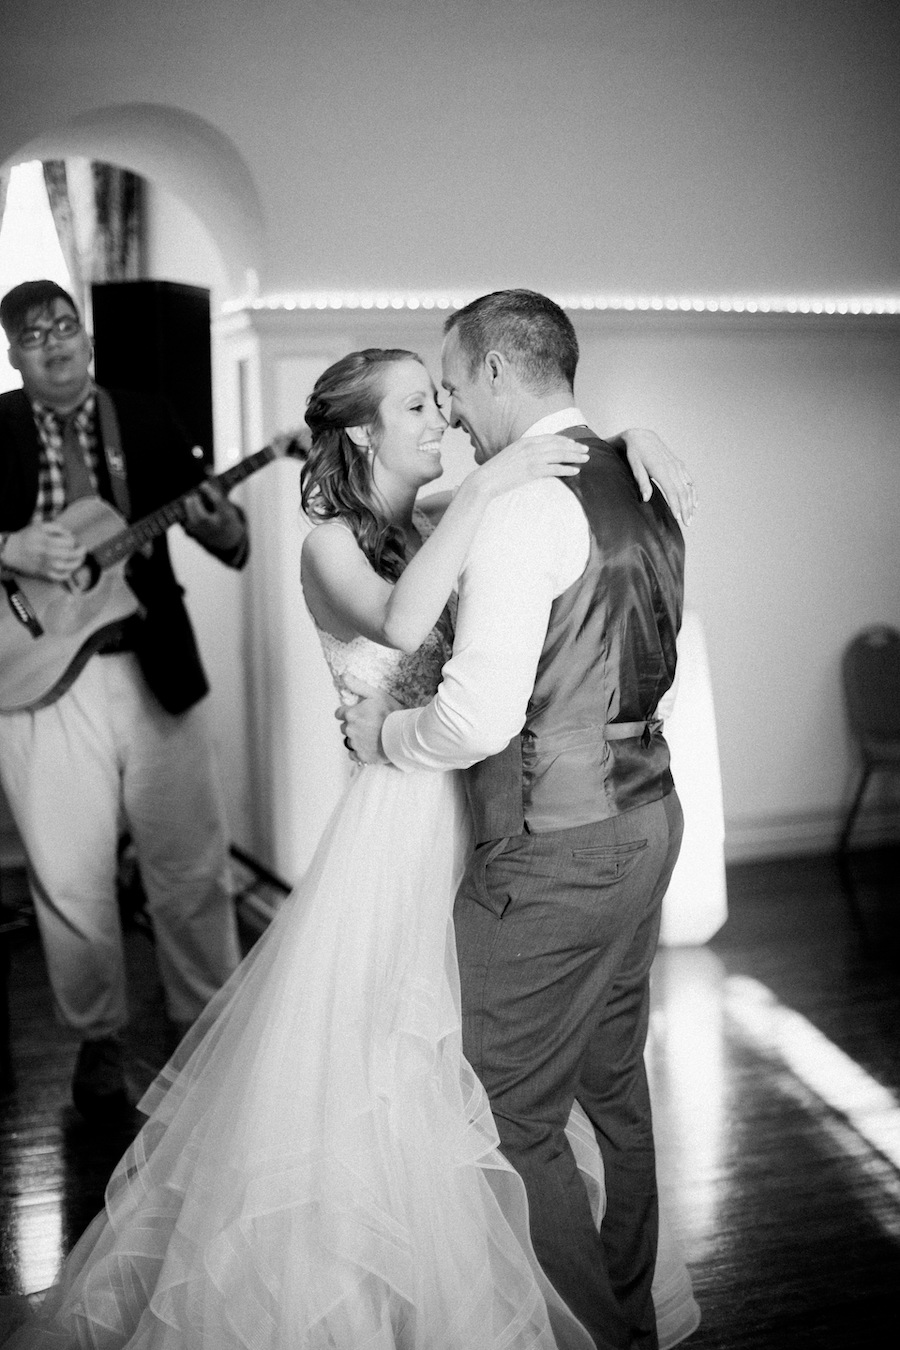 Bride and groom sharing their first dance